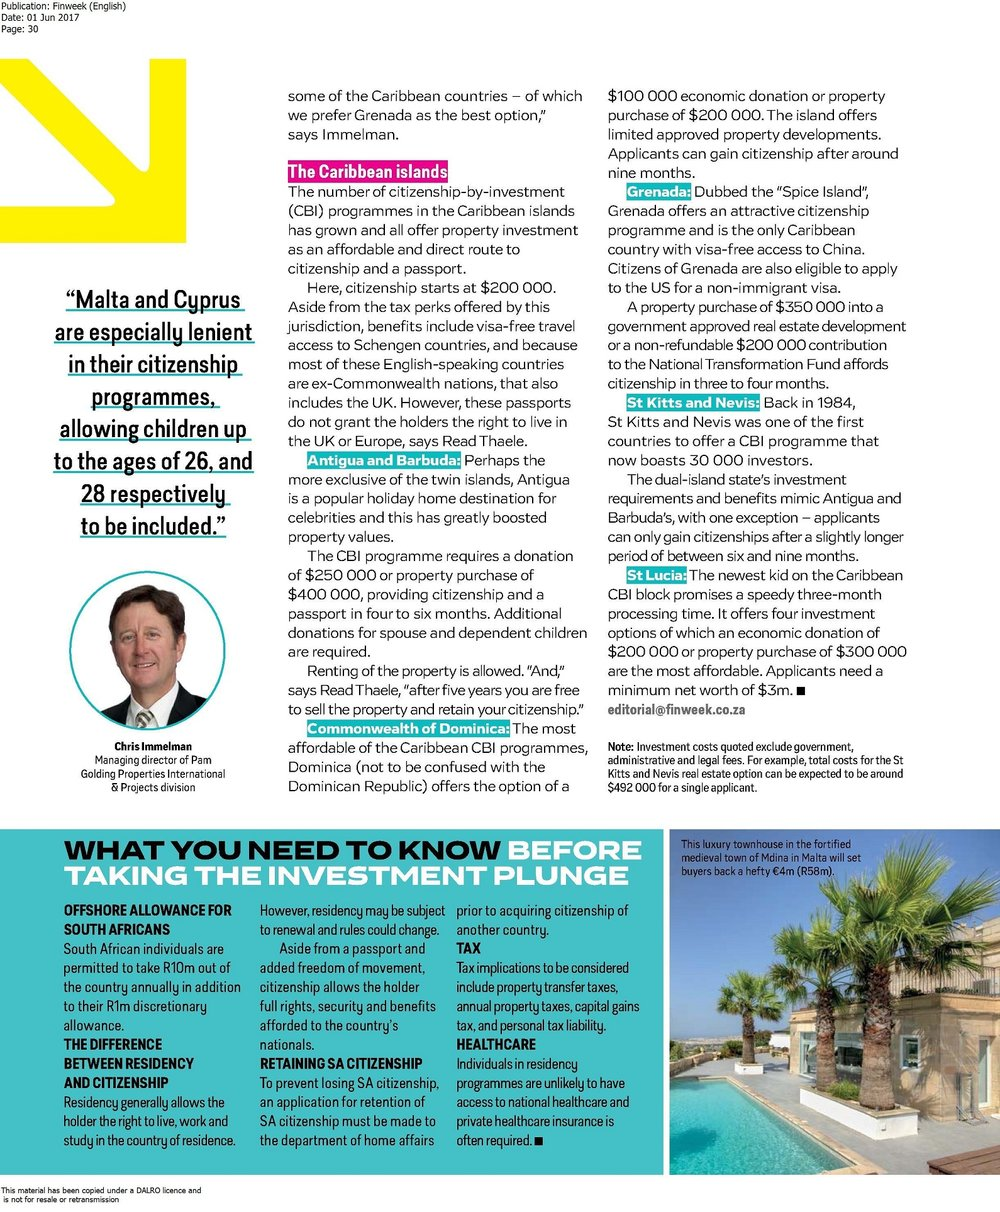 Finweek English LIO Global - pg 1 of 3 - Offshore property and visas incl. Malta - May 2017 (3).jpg